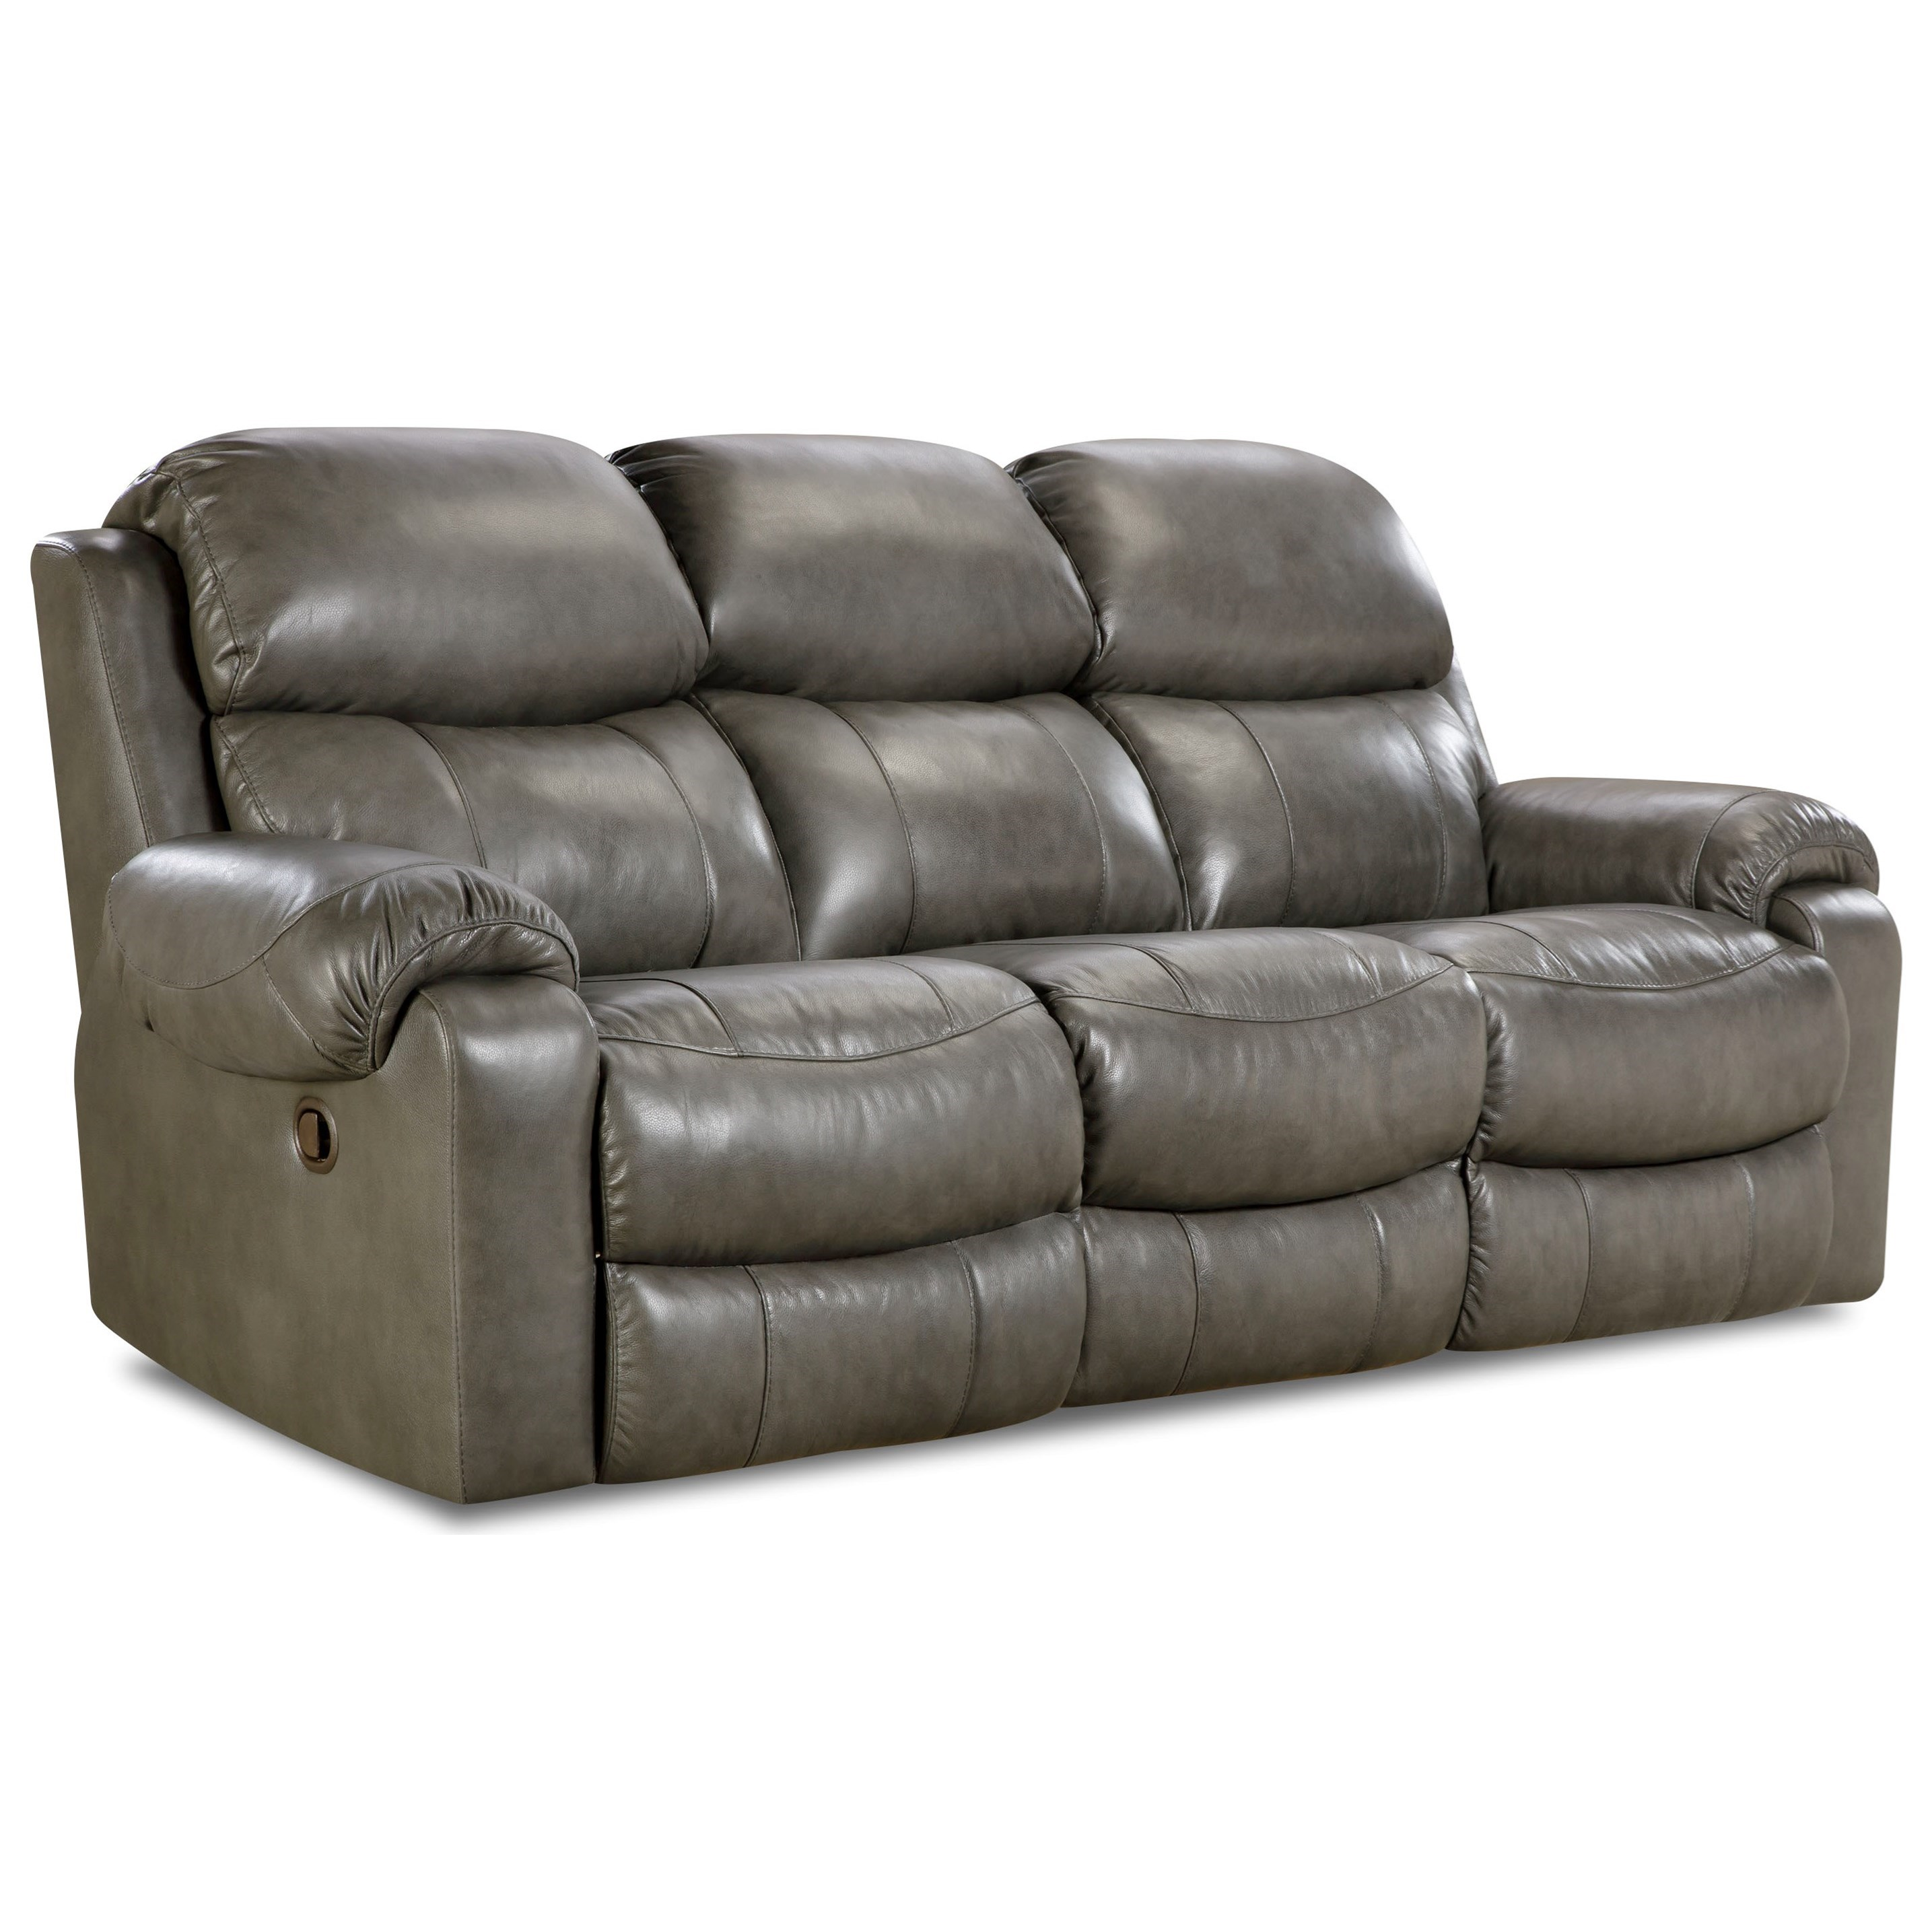 HomeStretch 135 Collection Double Reclining Sofa - Item Number: 135-30-14